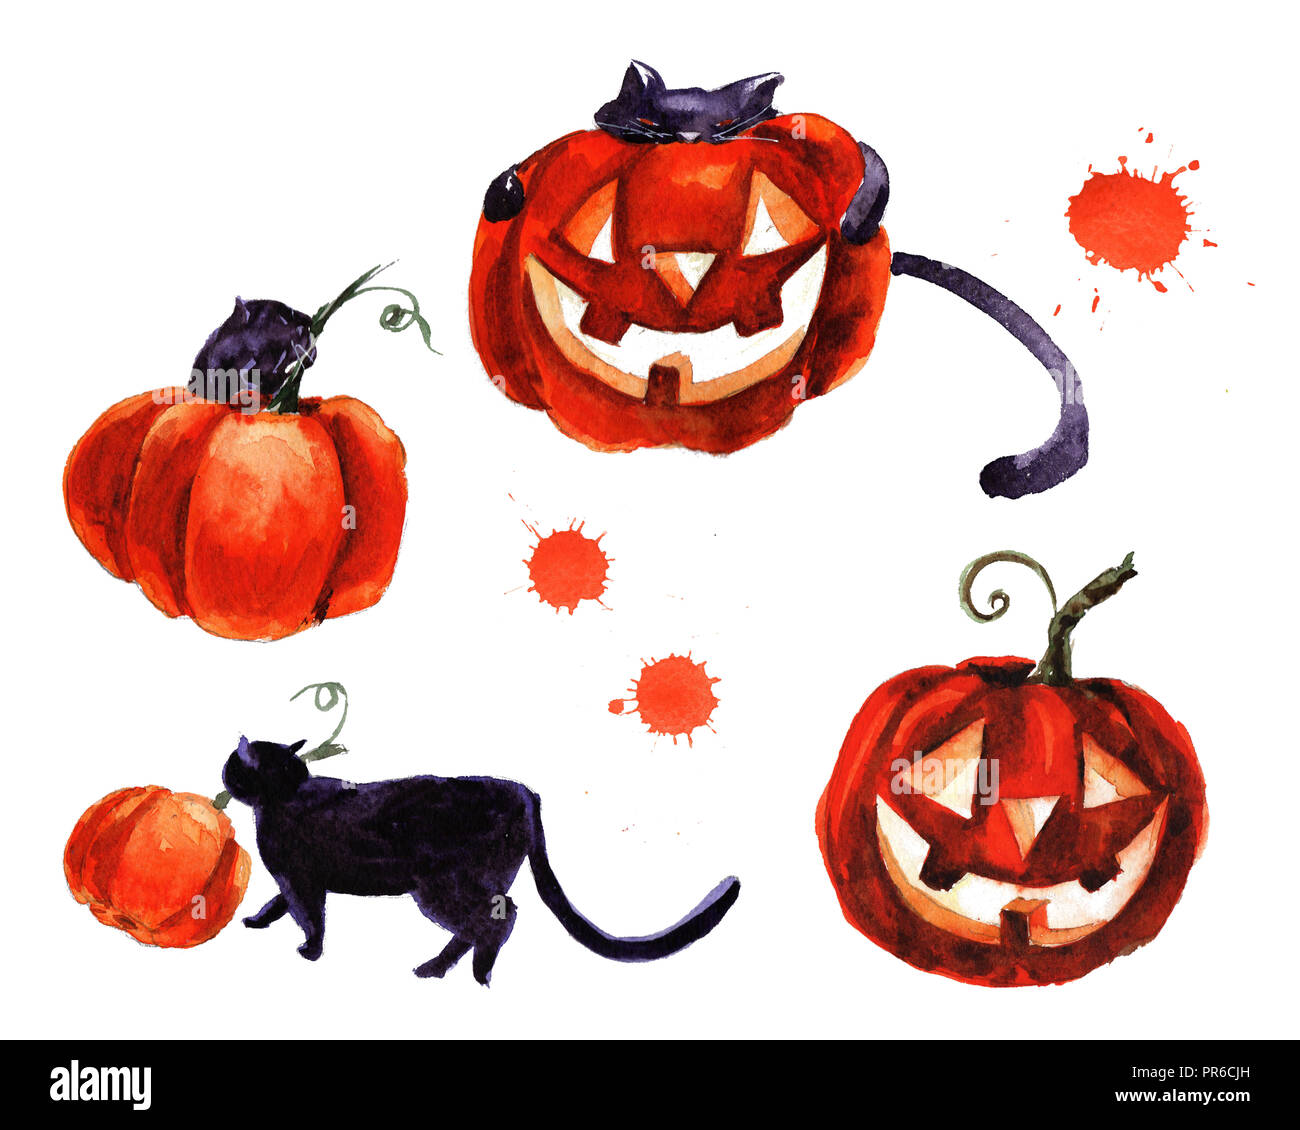 Jeu D Halloween De Symbole Illustration A L Aquarelle A La